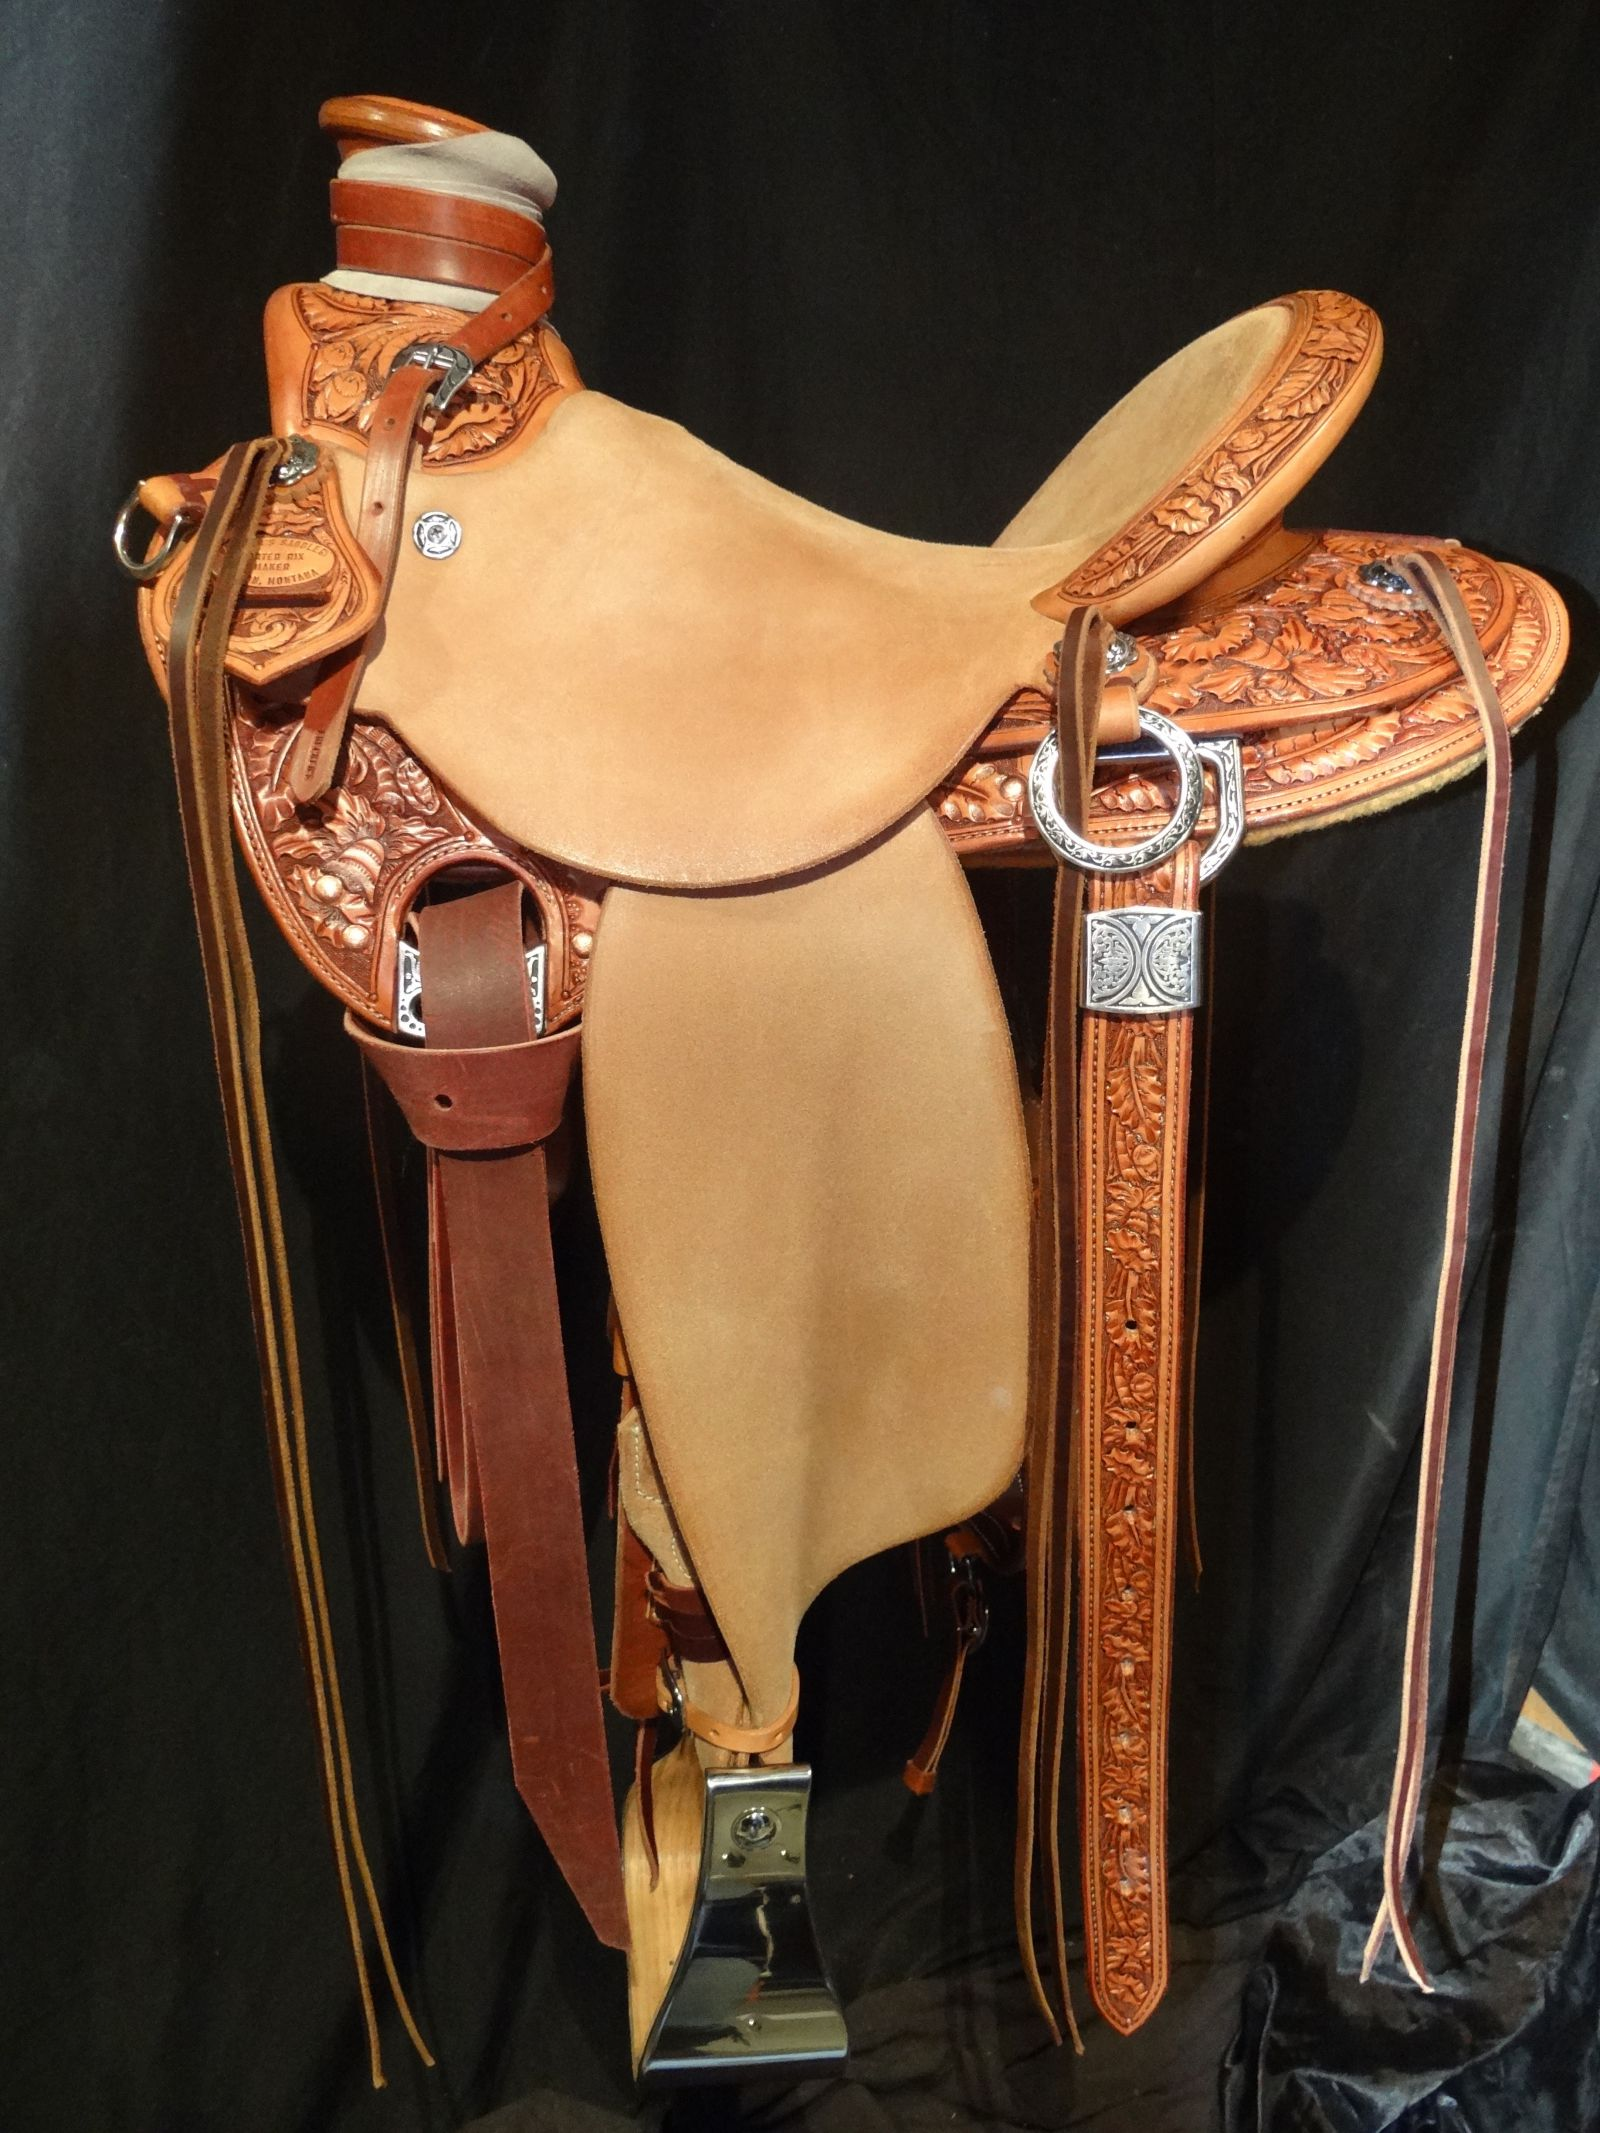 Traditional Tooling Patterns - Frecker's Saddlery Gallery